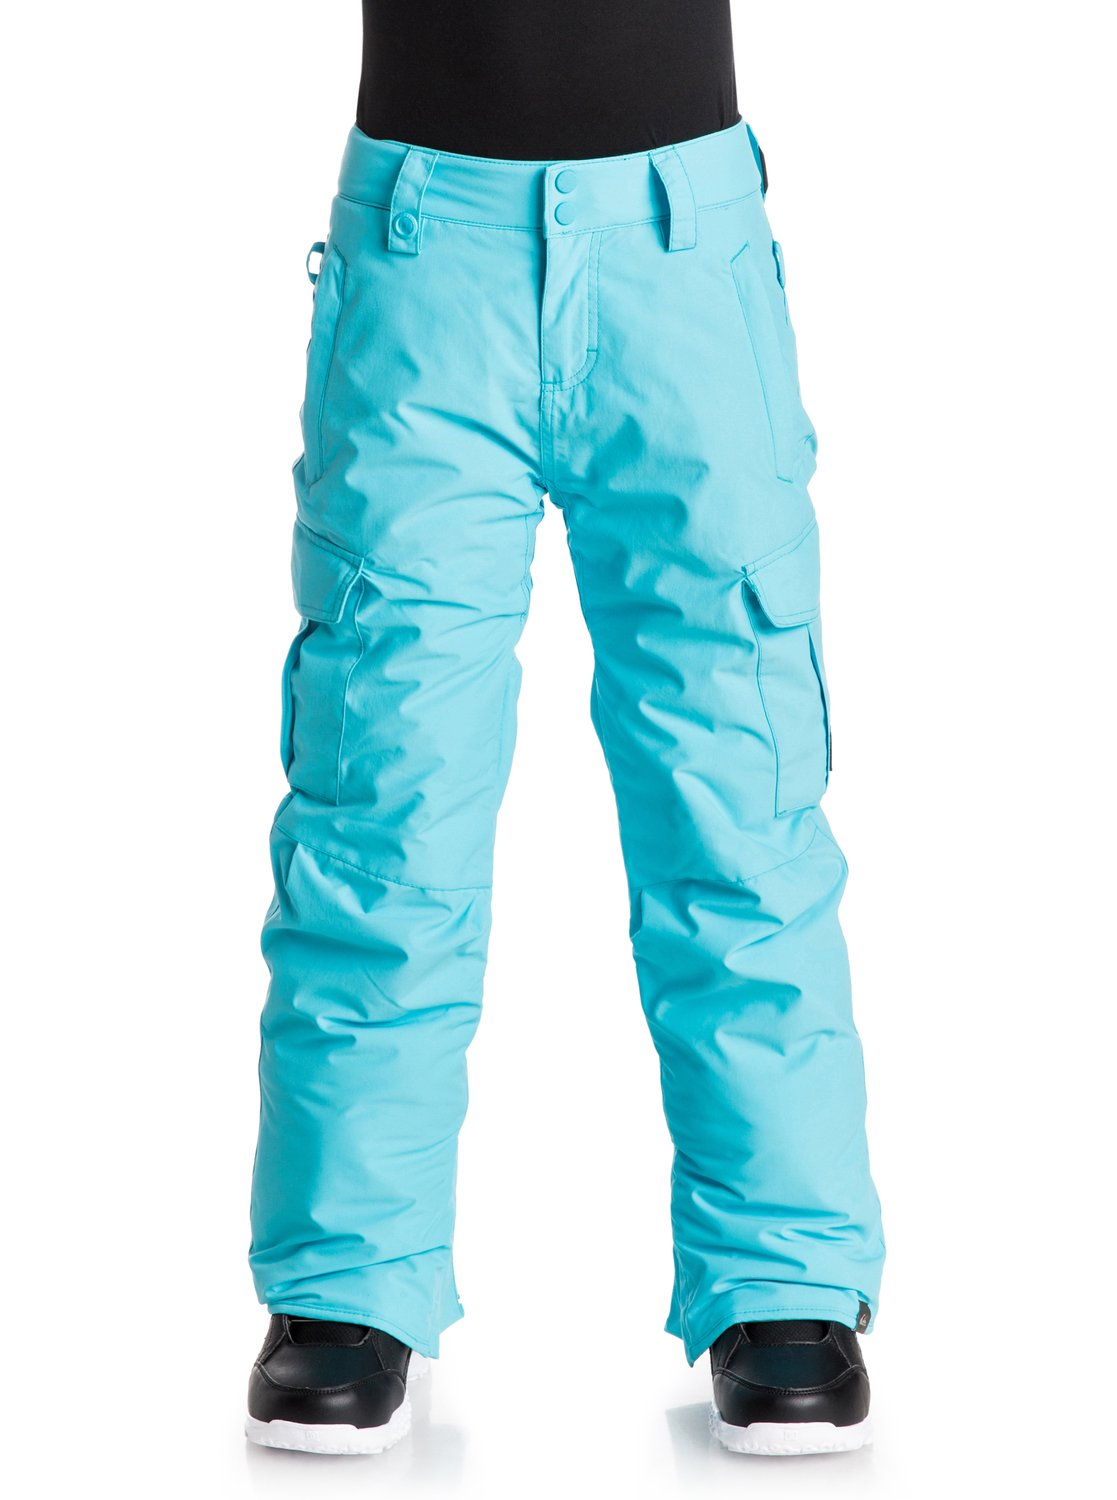 Find great deals on eBay for boys snowboard pants. Shop with confidence.